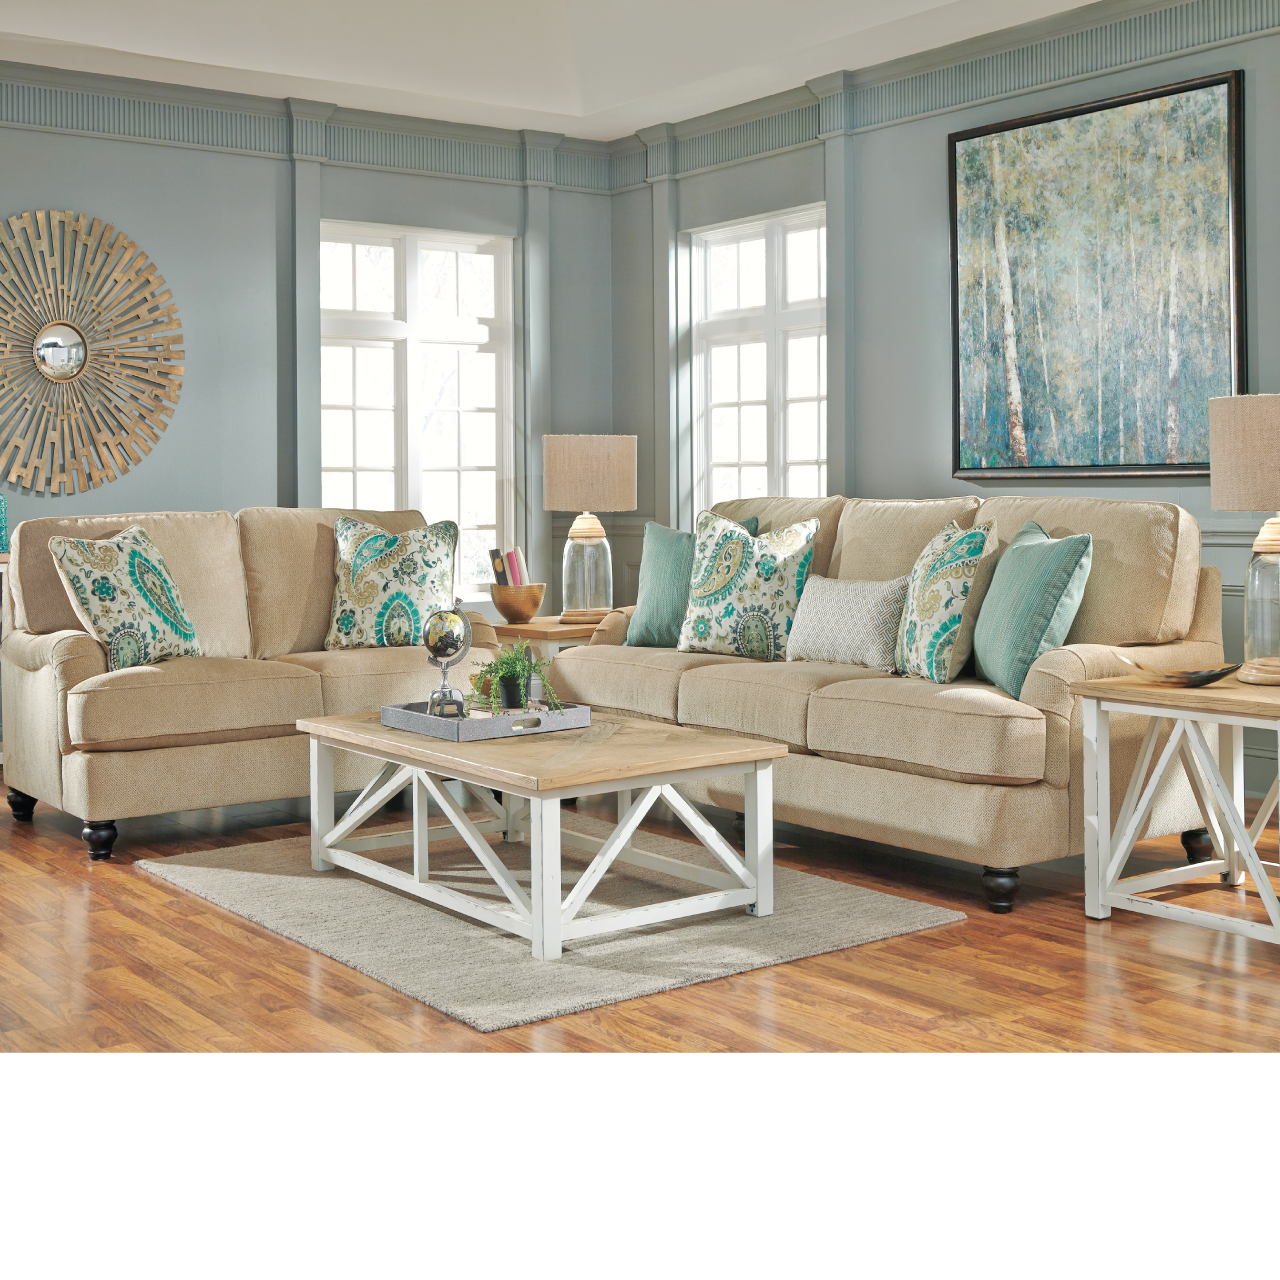 Coastal living room ideas lochian sofa by ashley for Lounge furnishing ideas